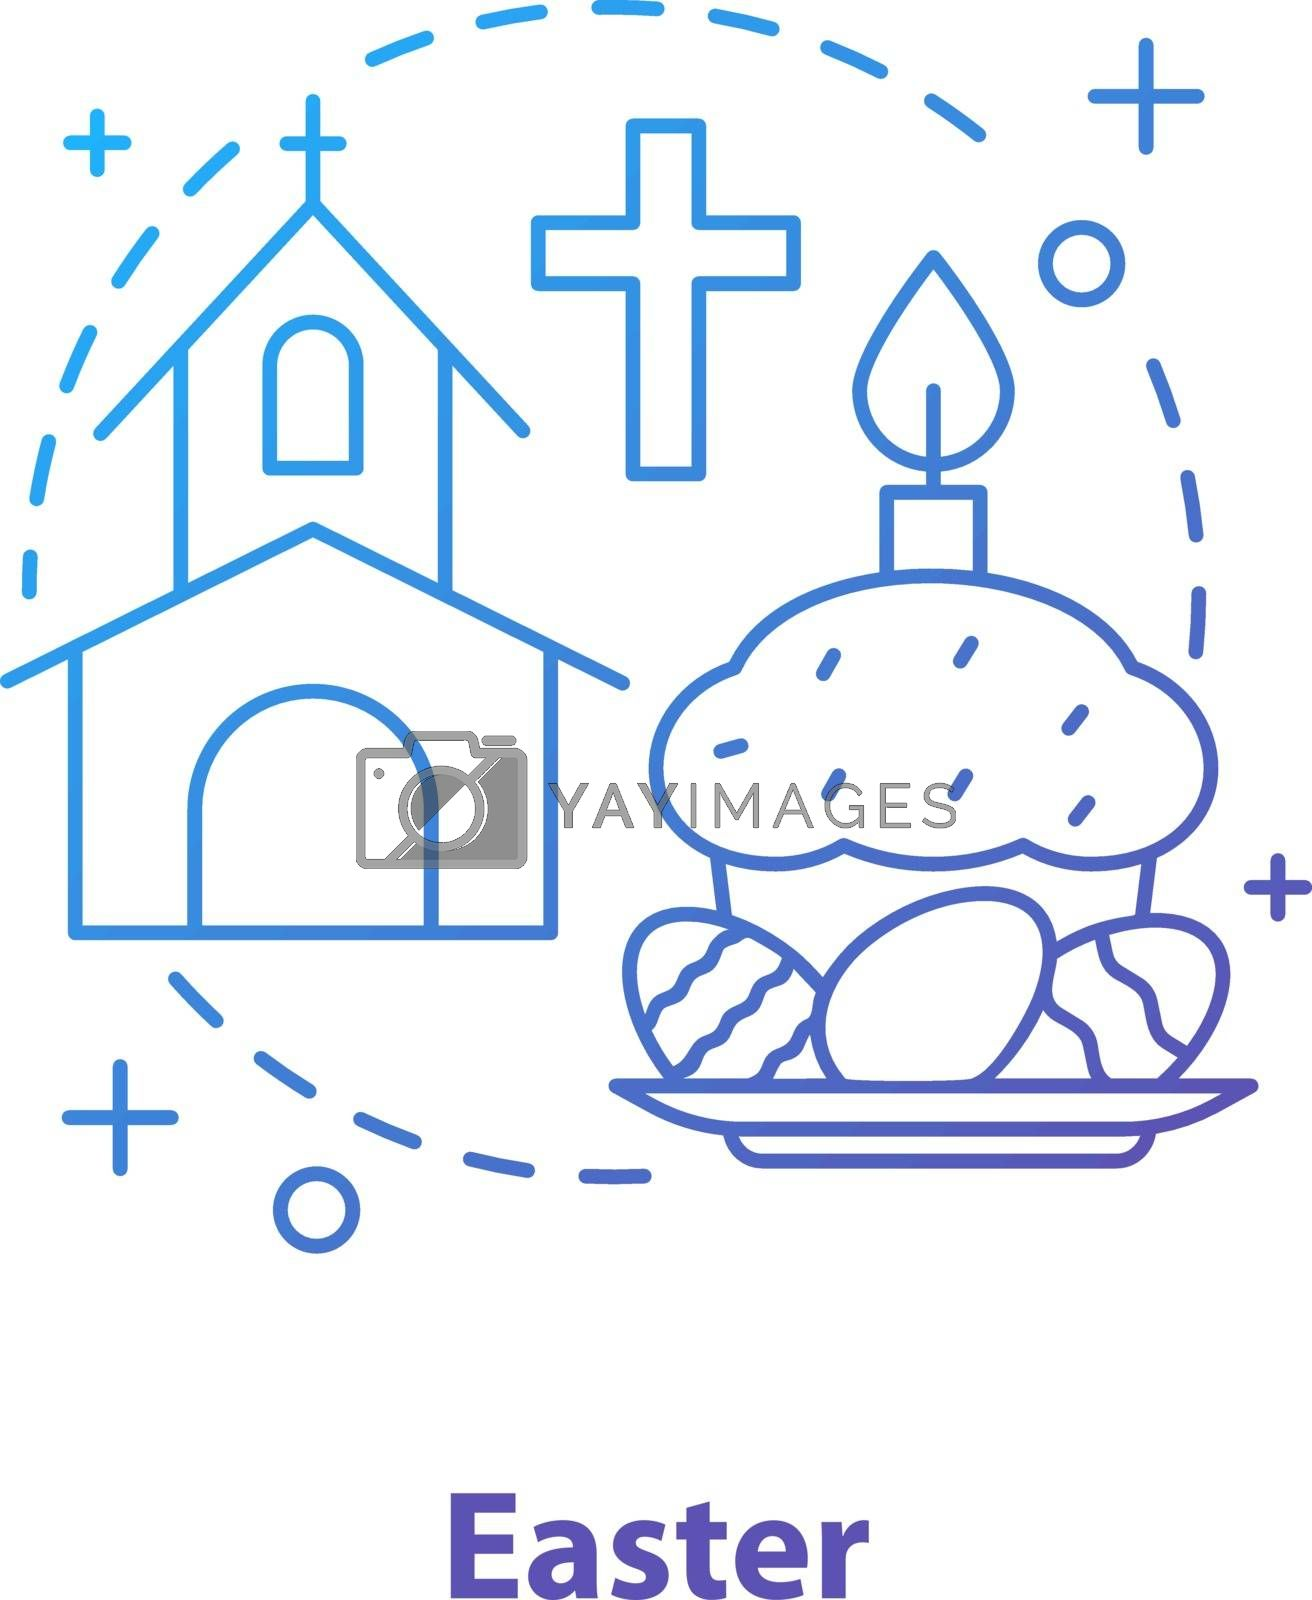 Easter concept icon by bsd